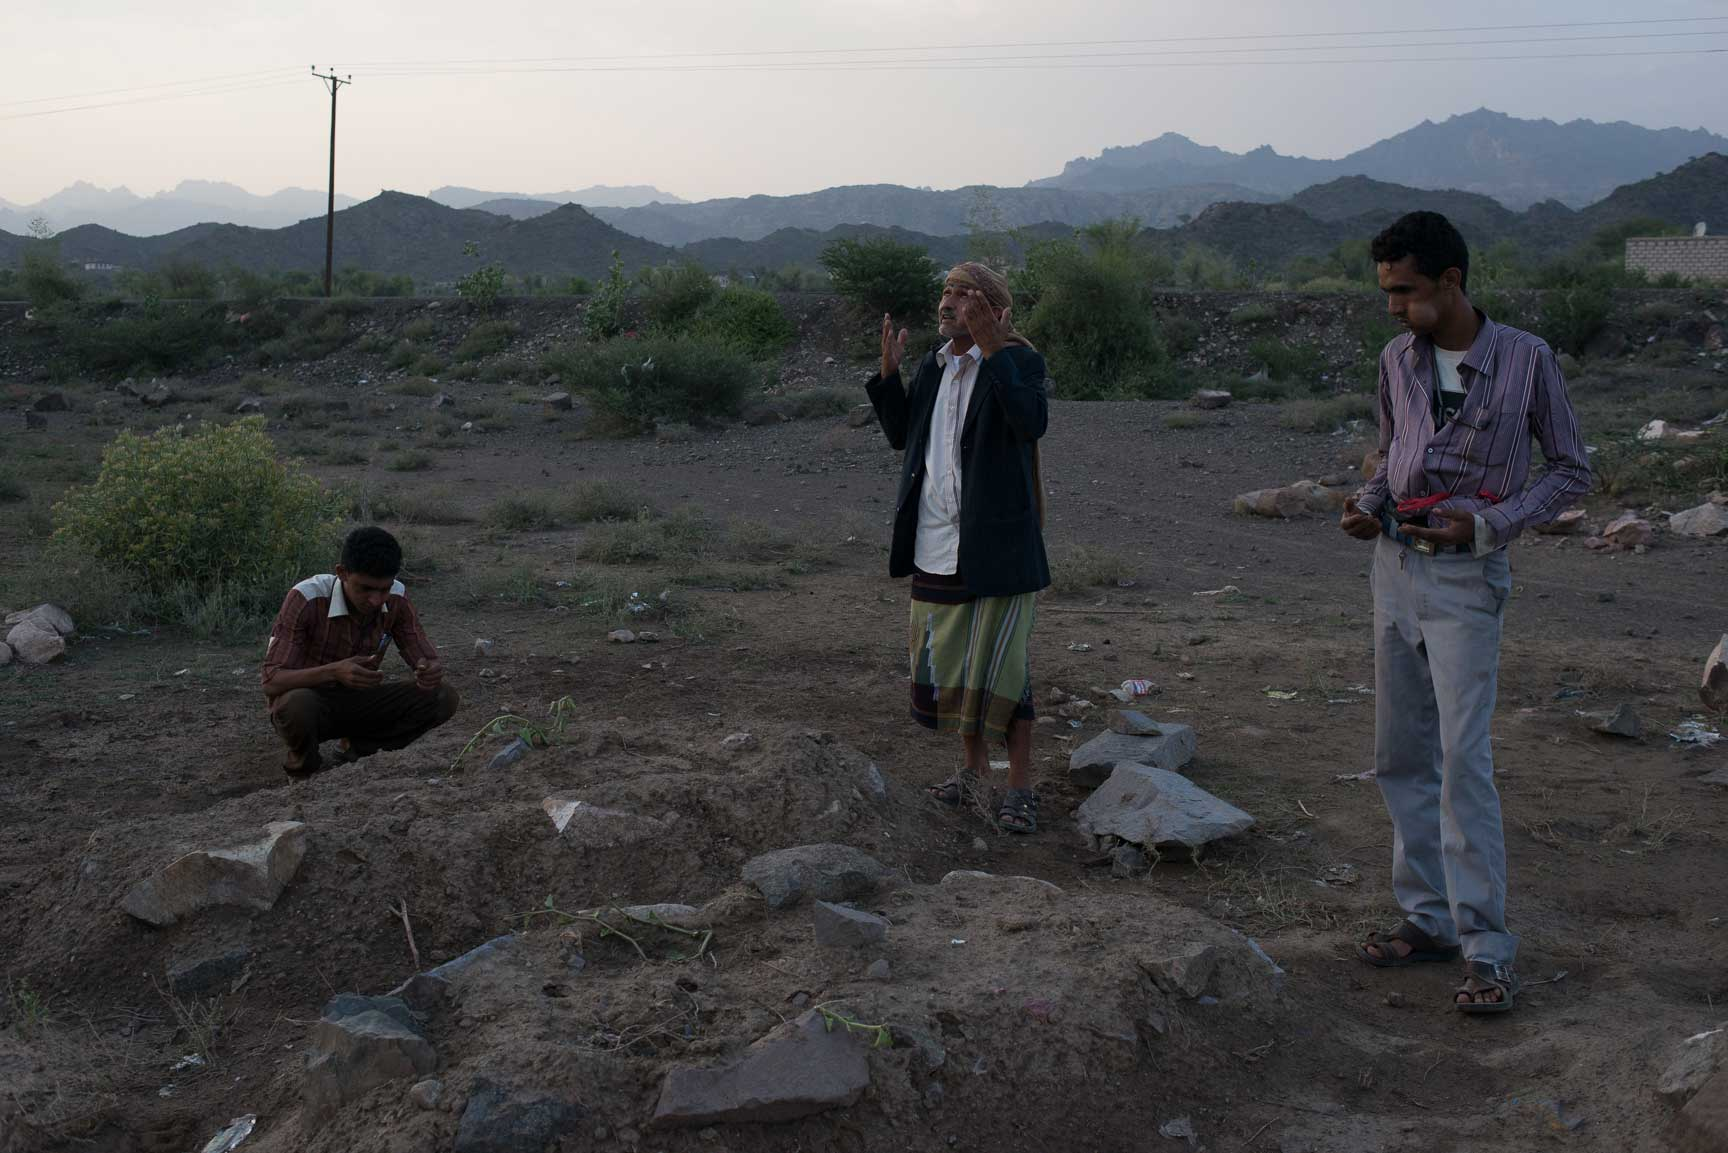 Muthana Abdullah Jaylani (center) prays over the graves of his relatives and neighbors who were killed by an airstrike, July 22, 2015. The strike killed at least five people, though only two were reported to the local MSF Hospital.